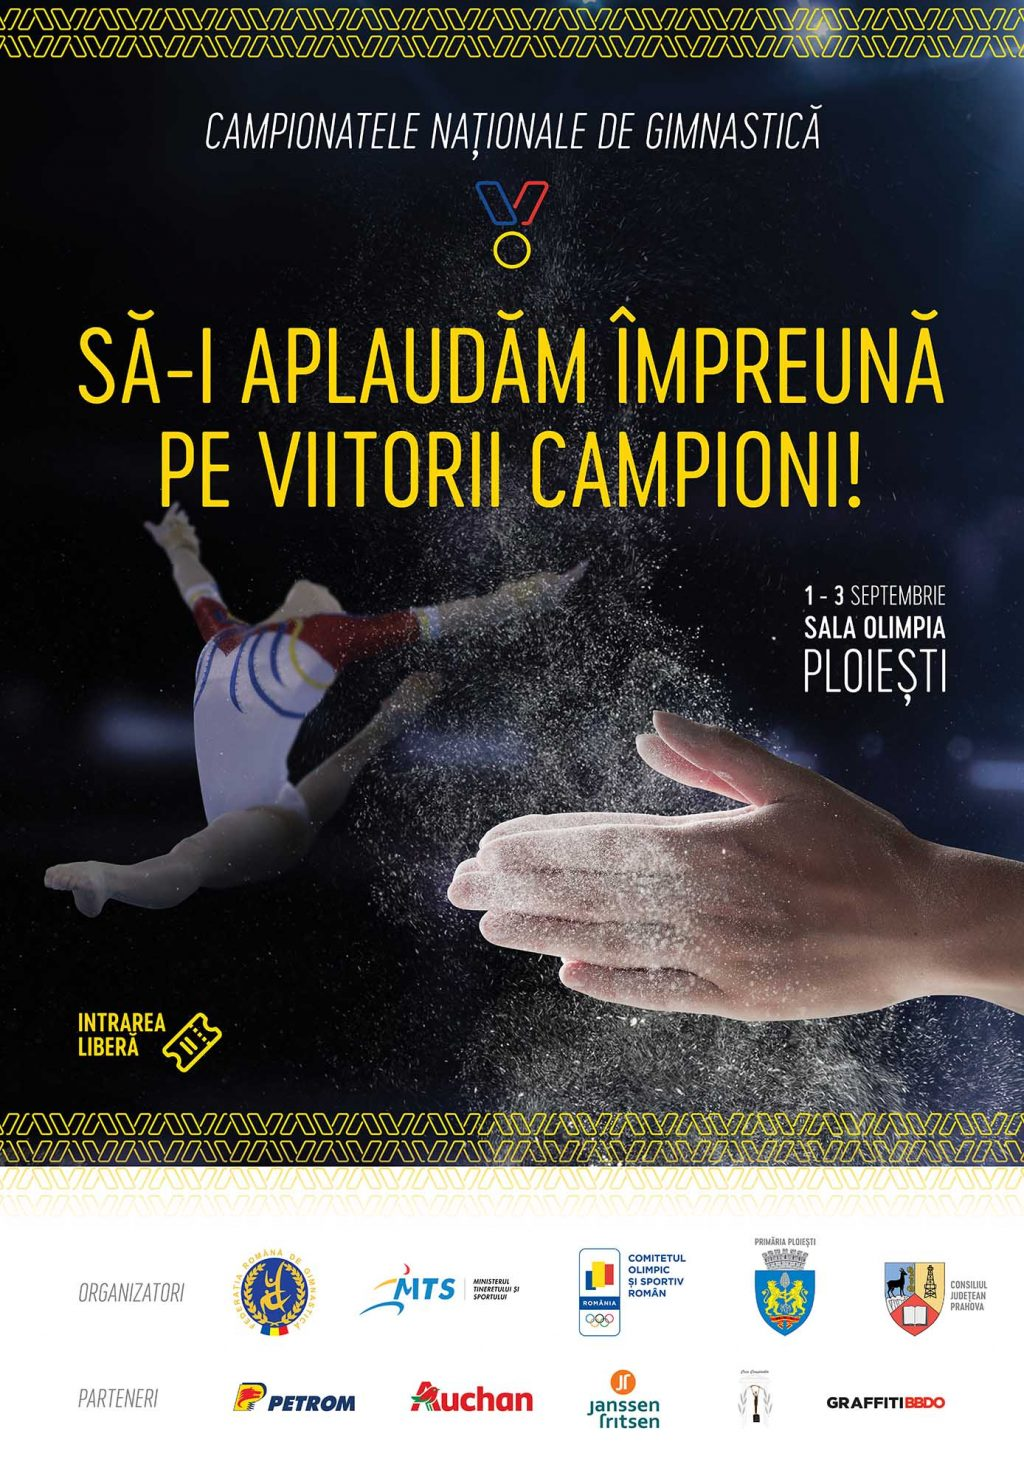 Campionatul National Individual Open si  Campionatul National al Reprezentativelor de Club Masculin si Feminin,  transmise live cu ajutorul Axis Communications si NetRex